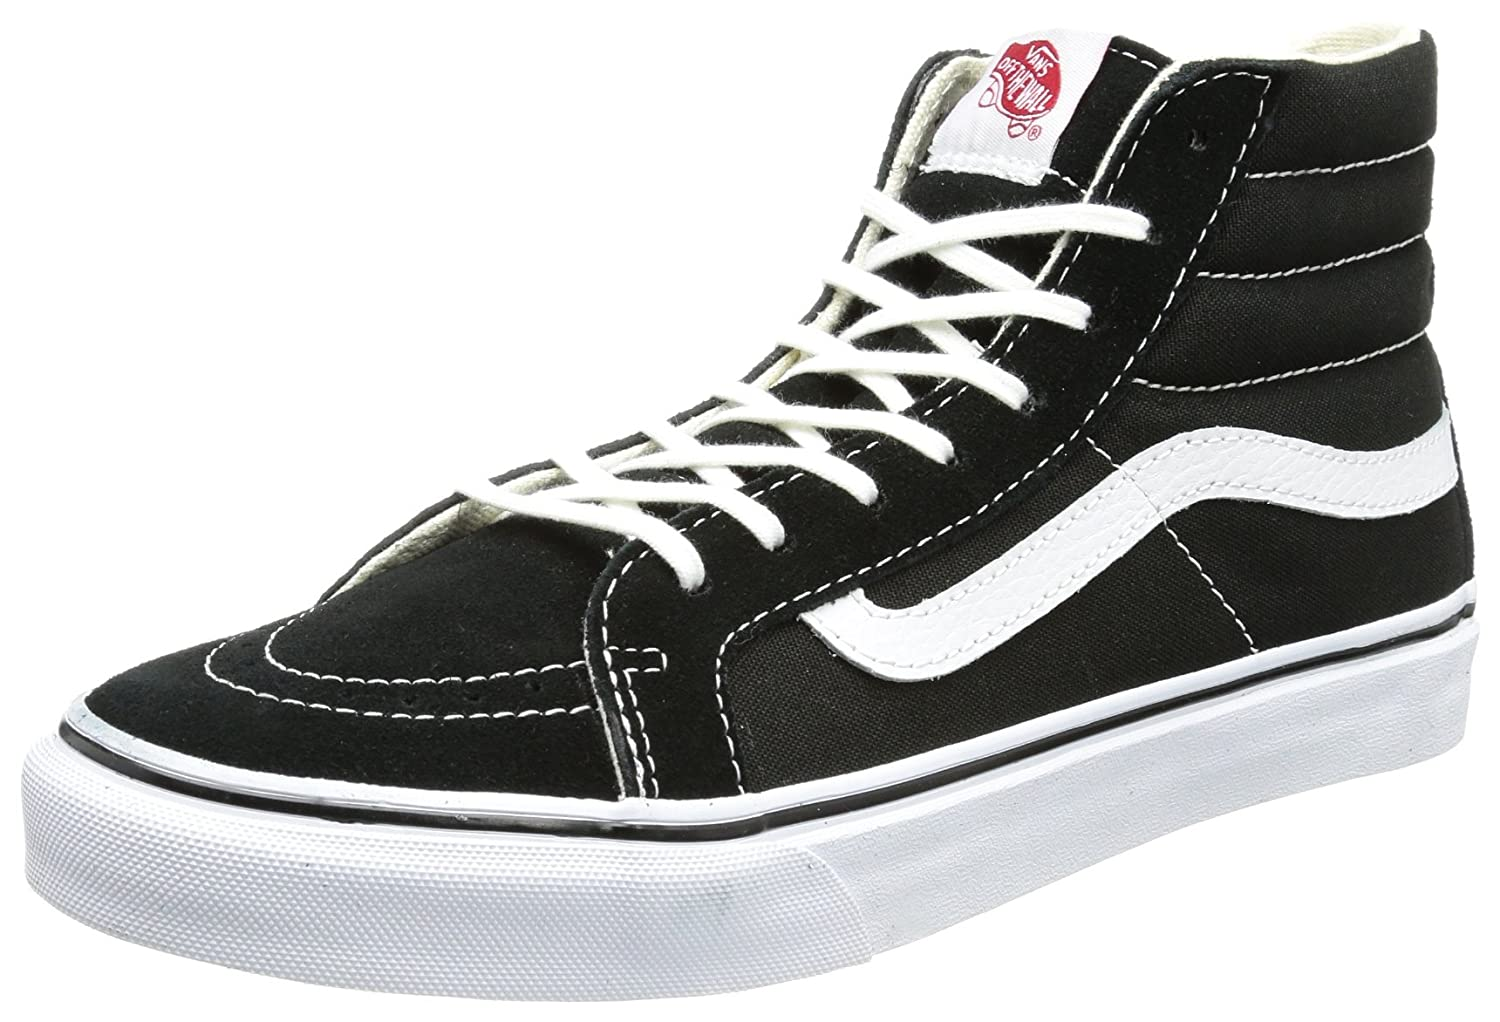 Vans Unisex Sk8-Hi Slim Women's Skate Shoe B07DN3SKGM 41 M EU / 10 B(M) US Women / 8.5 D(M) US Men|Black/White